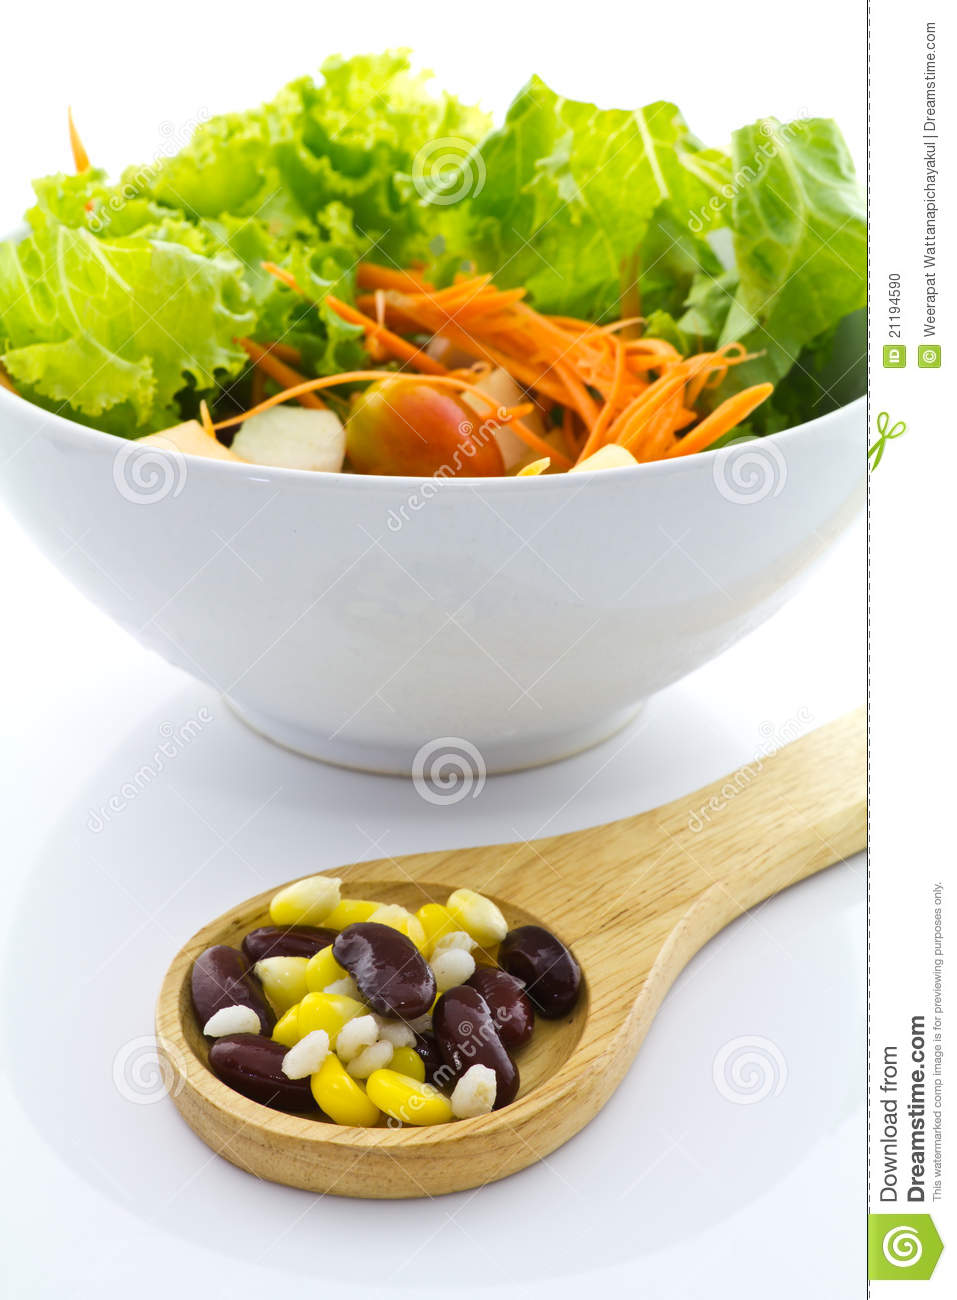 Cereal and salad